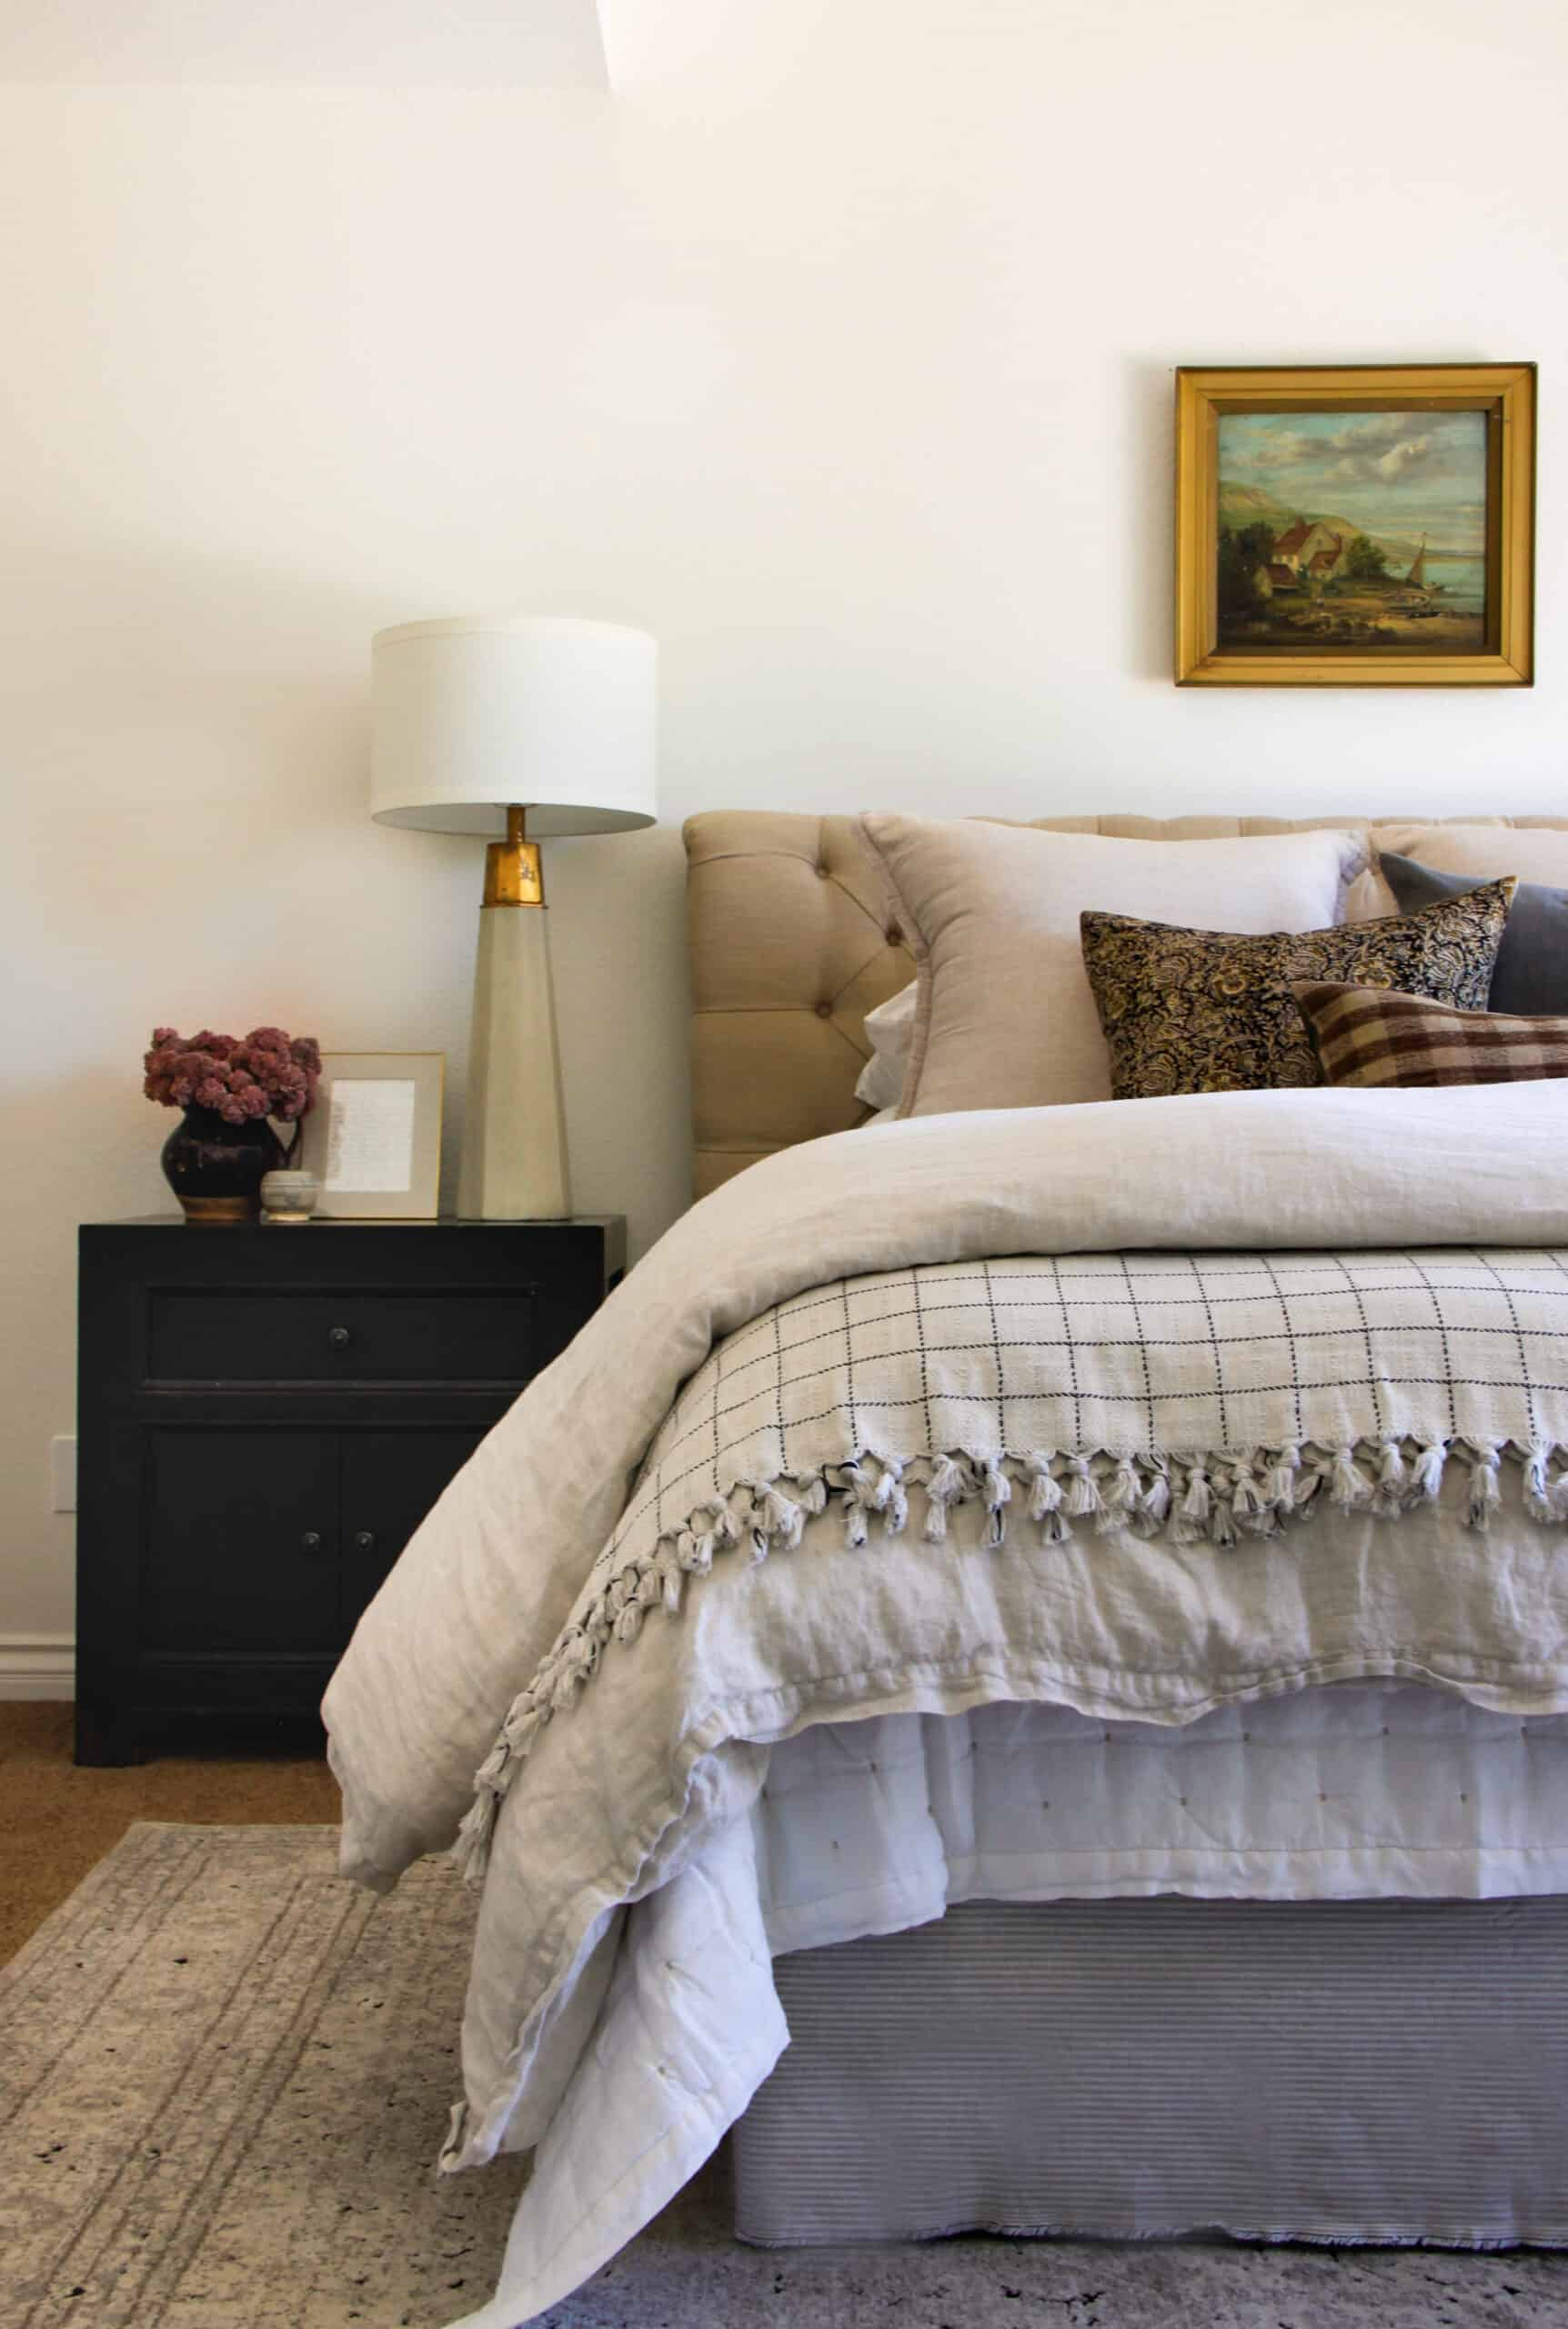 beautiful bed with layered bedding and oil painting above